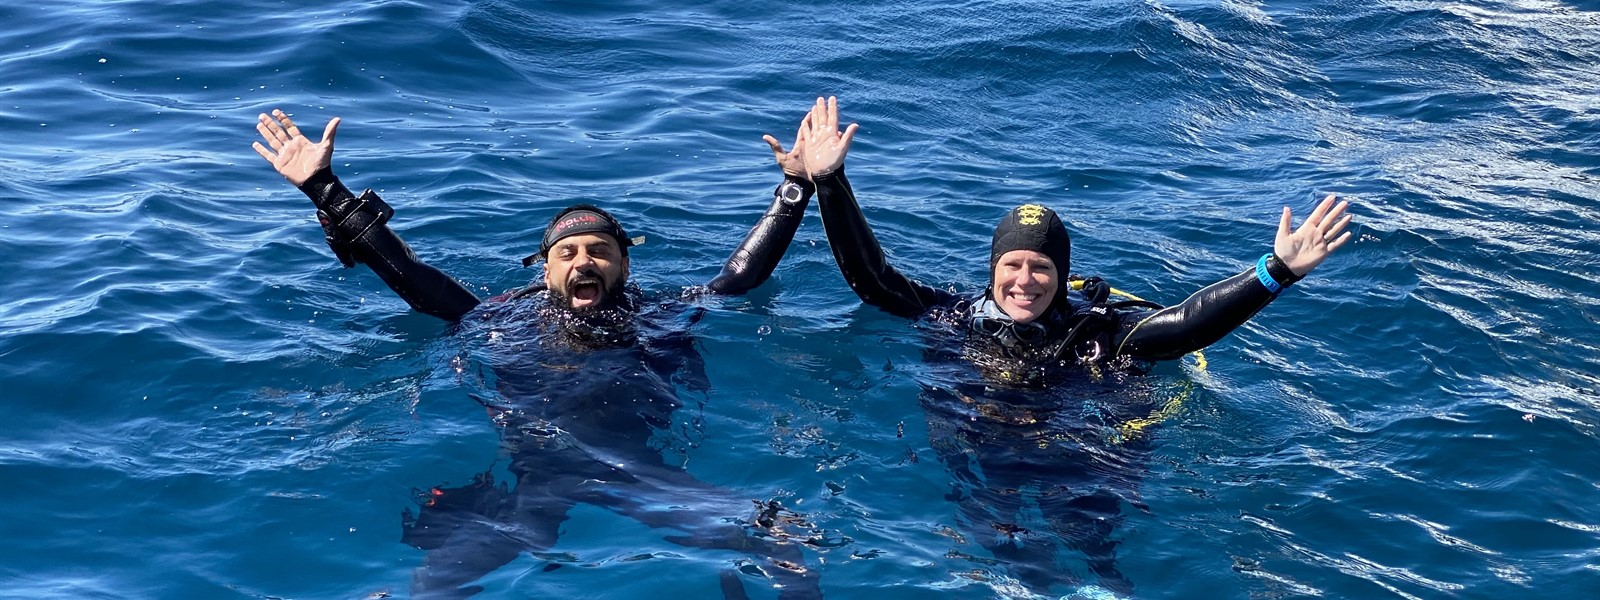 Picture of two divers in the ocean waving up at the camera.